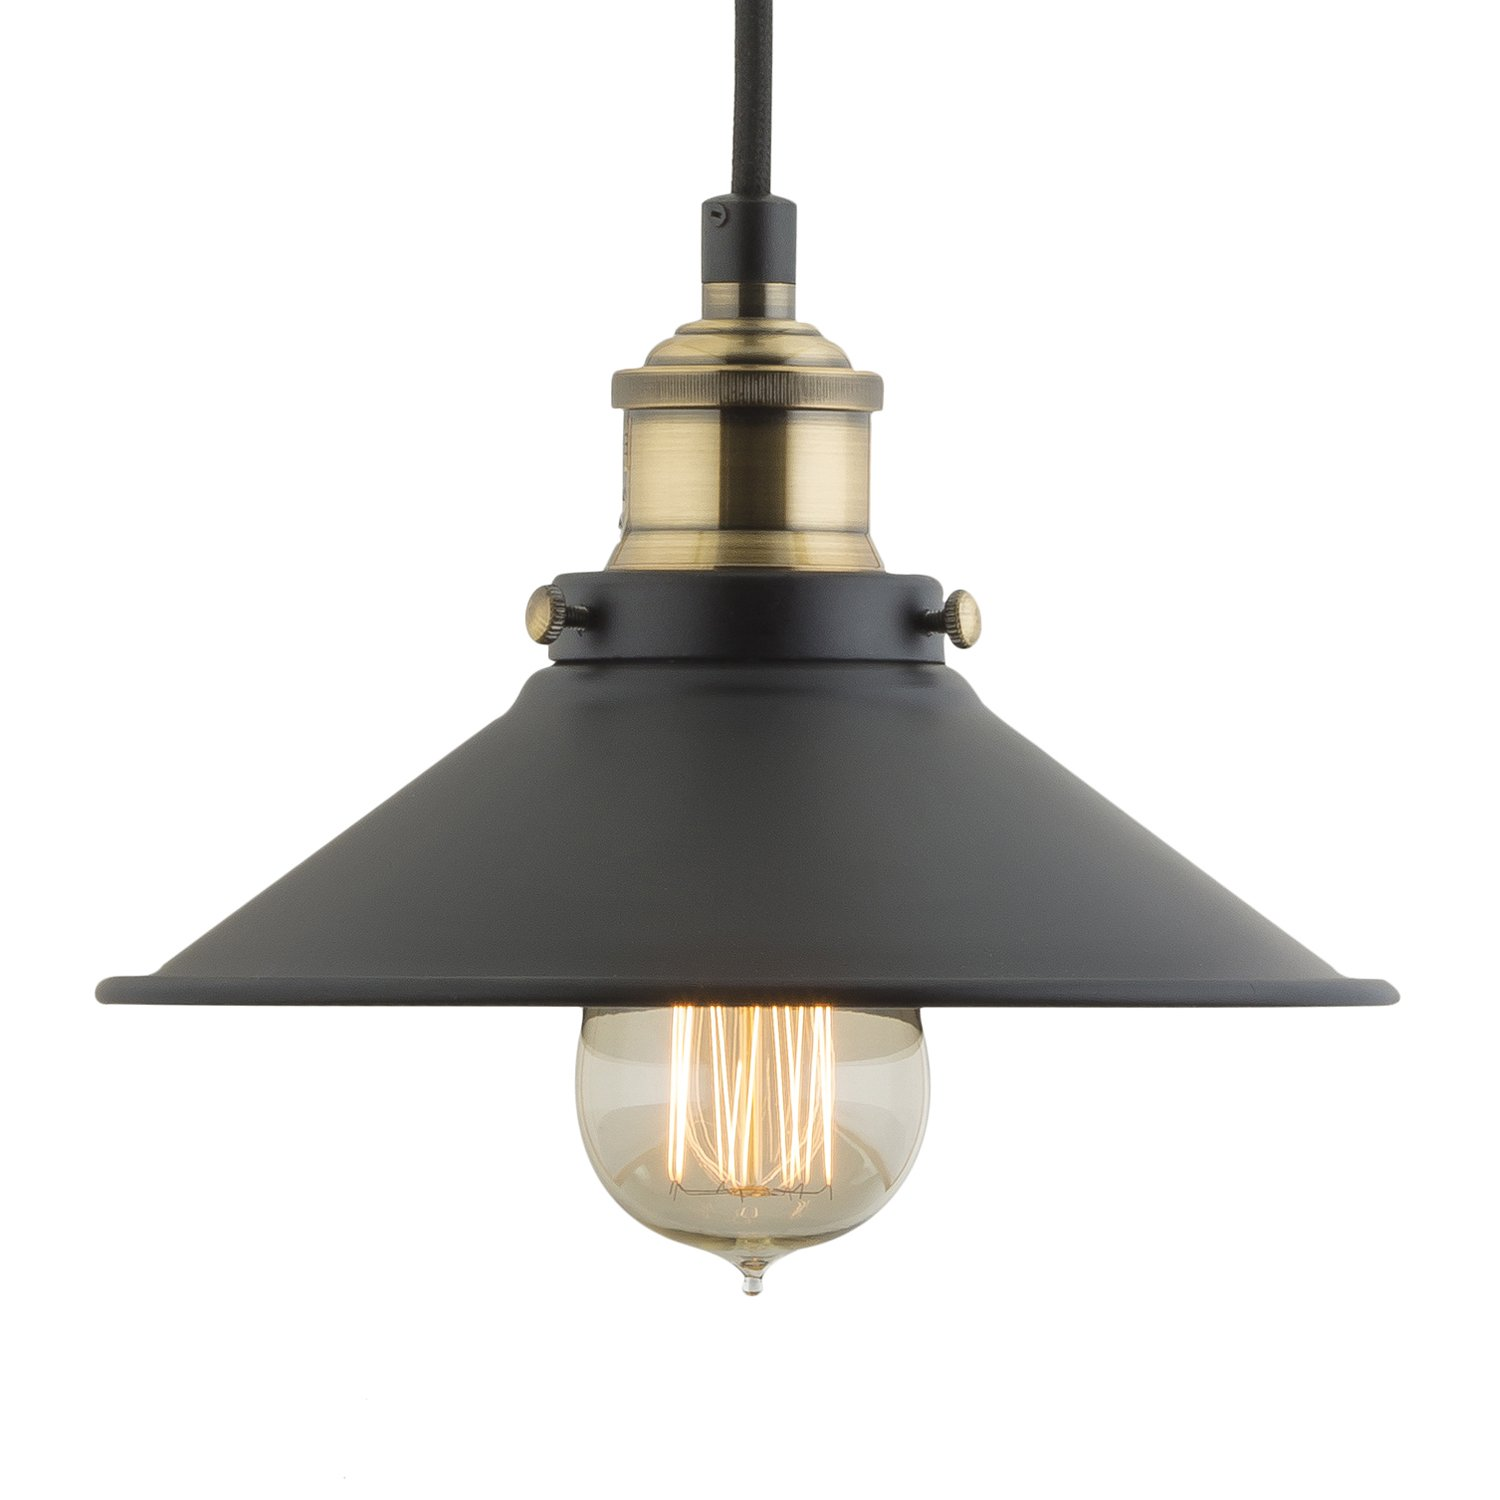 lighting of com home light fixtures black portfolio awesome ch beautiful ccl divineducation matte mini pendant fixture